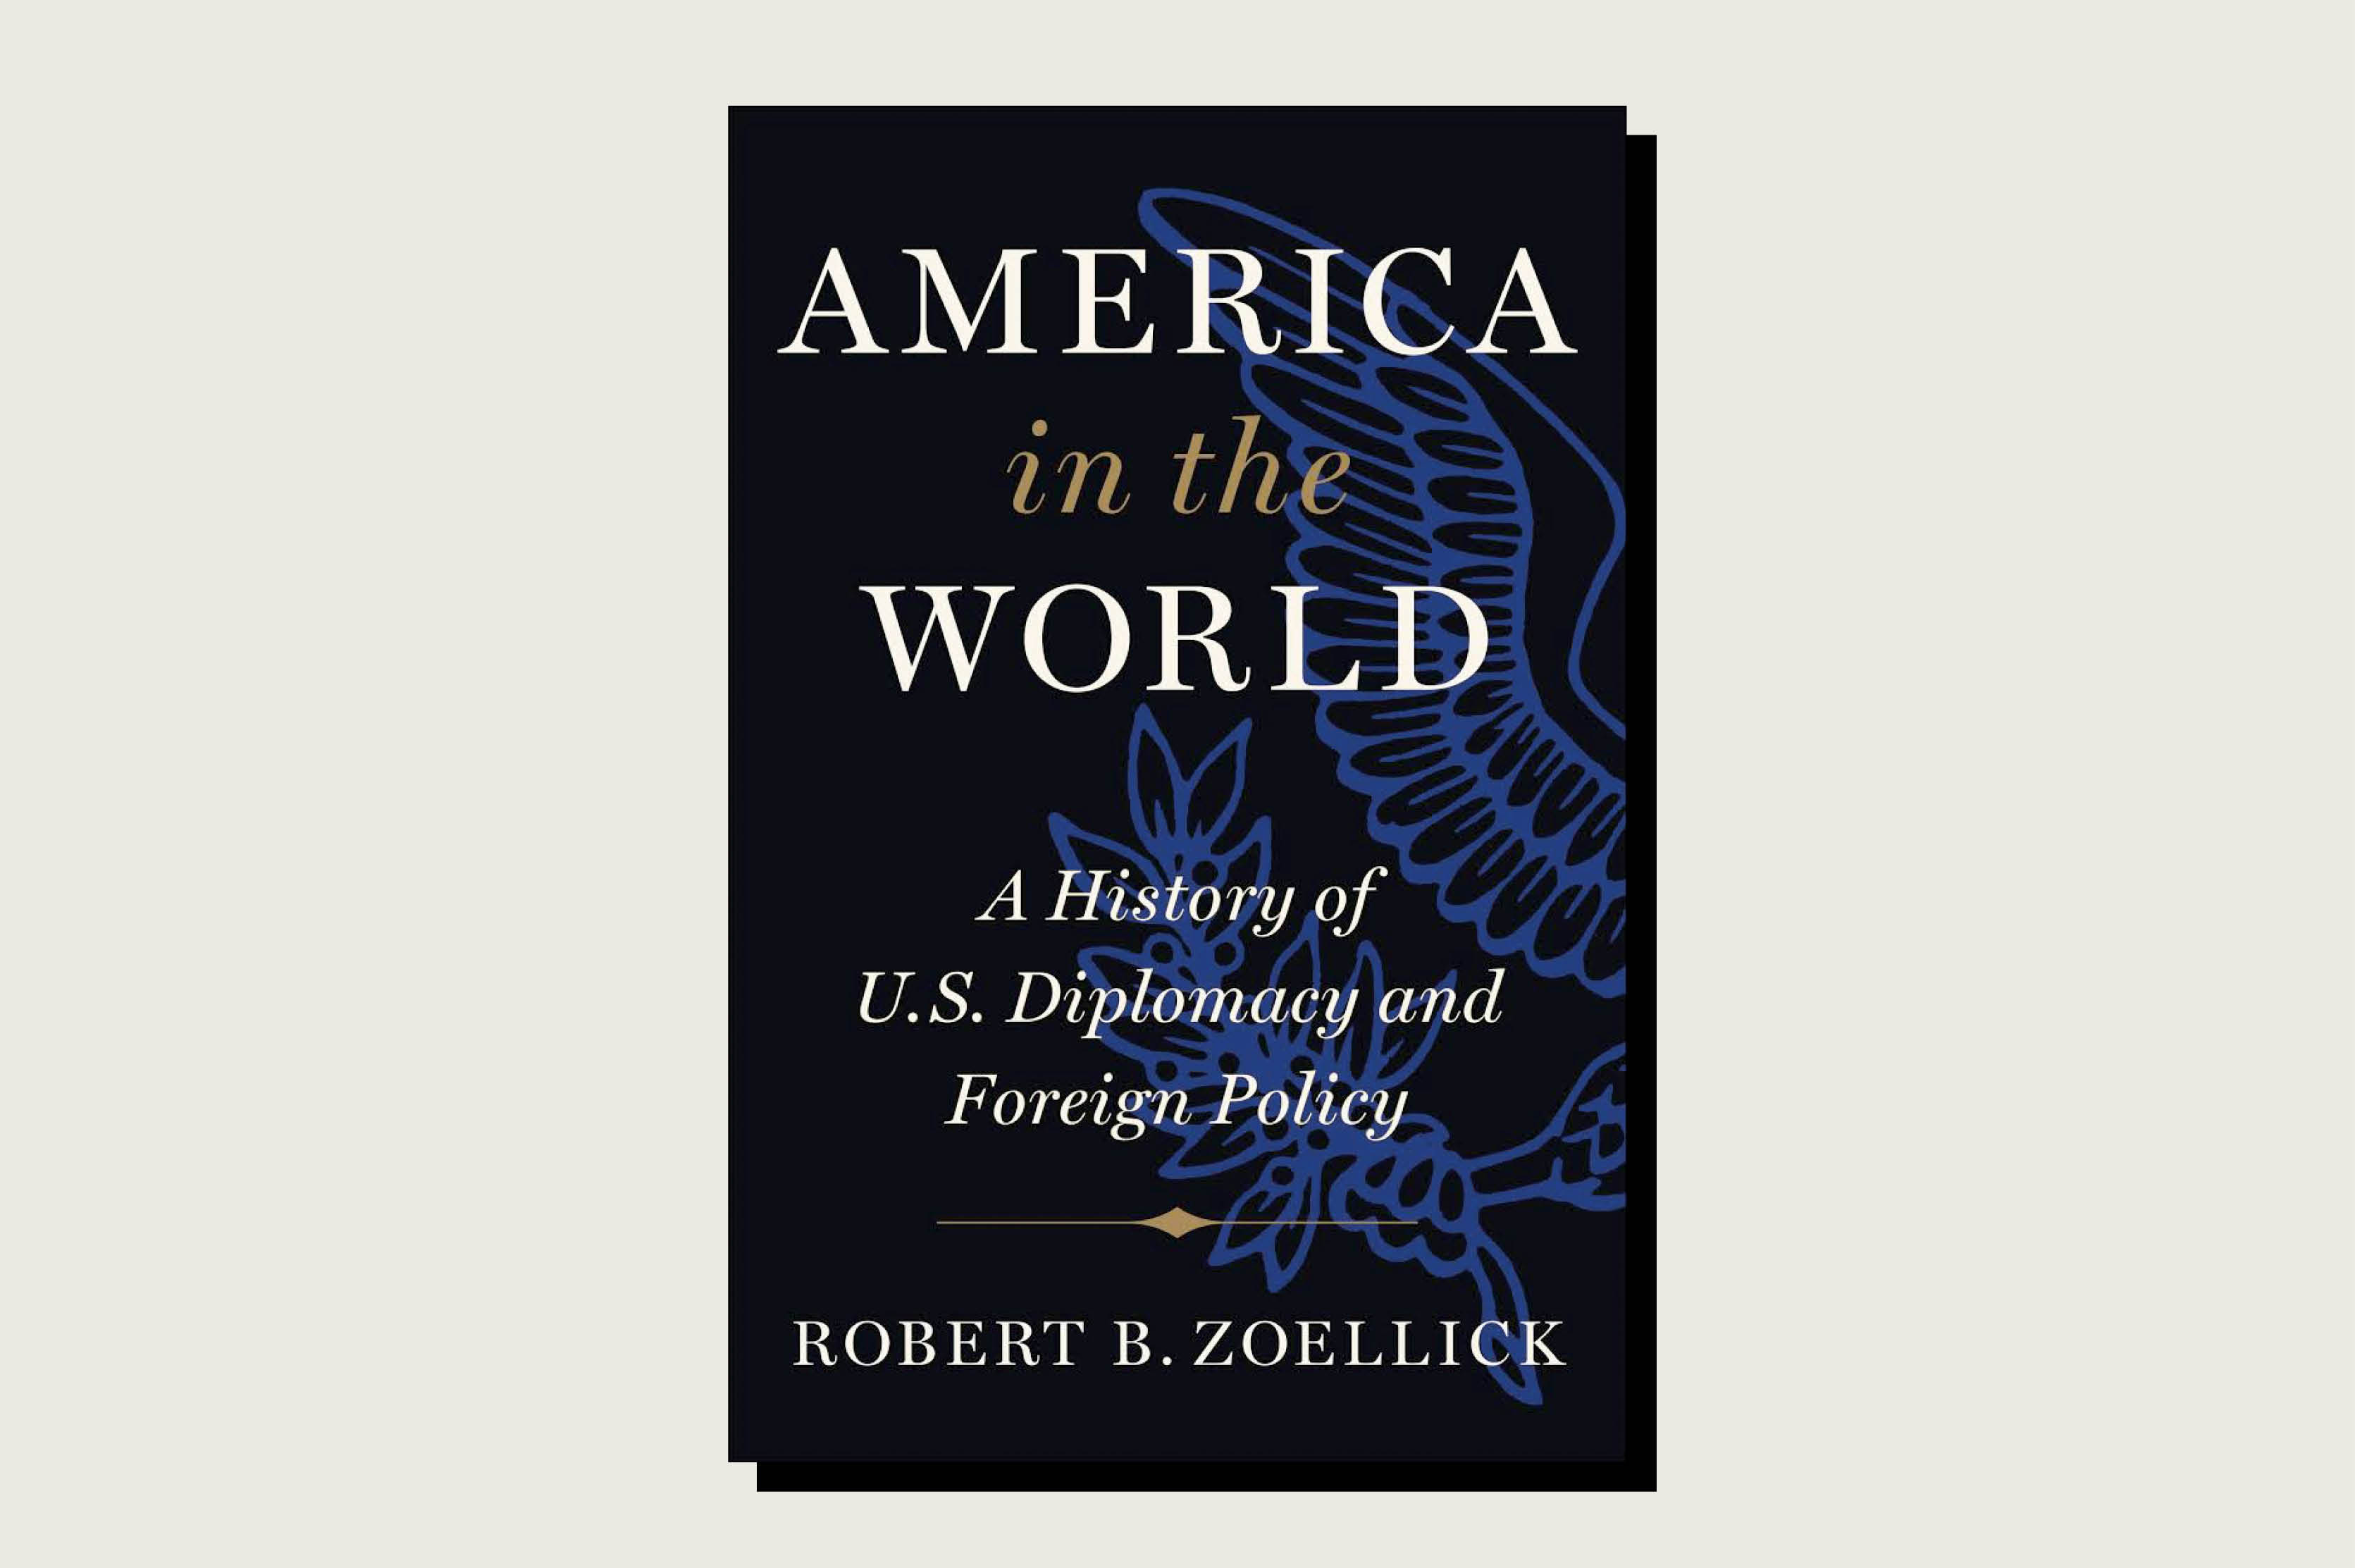 America in the World: A History of U.S. Diplomacy and Foreign Policy, Robert B. Zoellick, Twelve, 560 pp., , August 2020